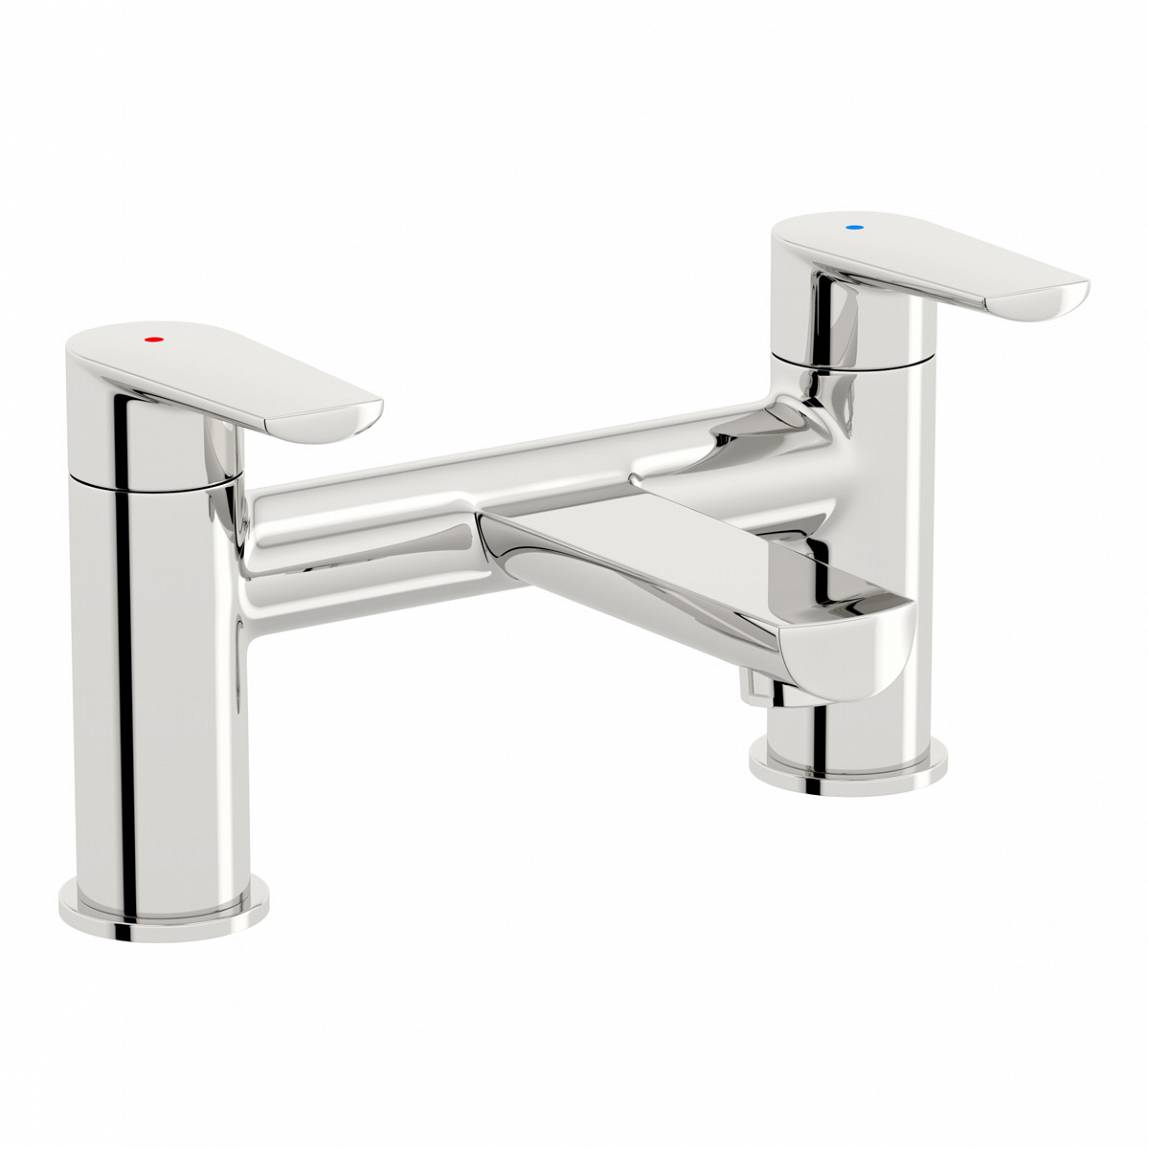 Image of Langdale Bath Mixer